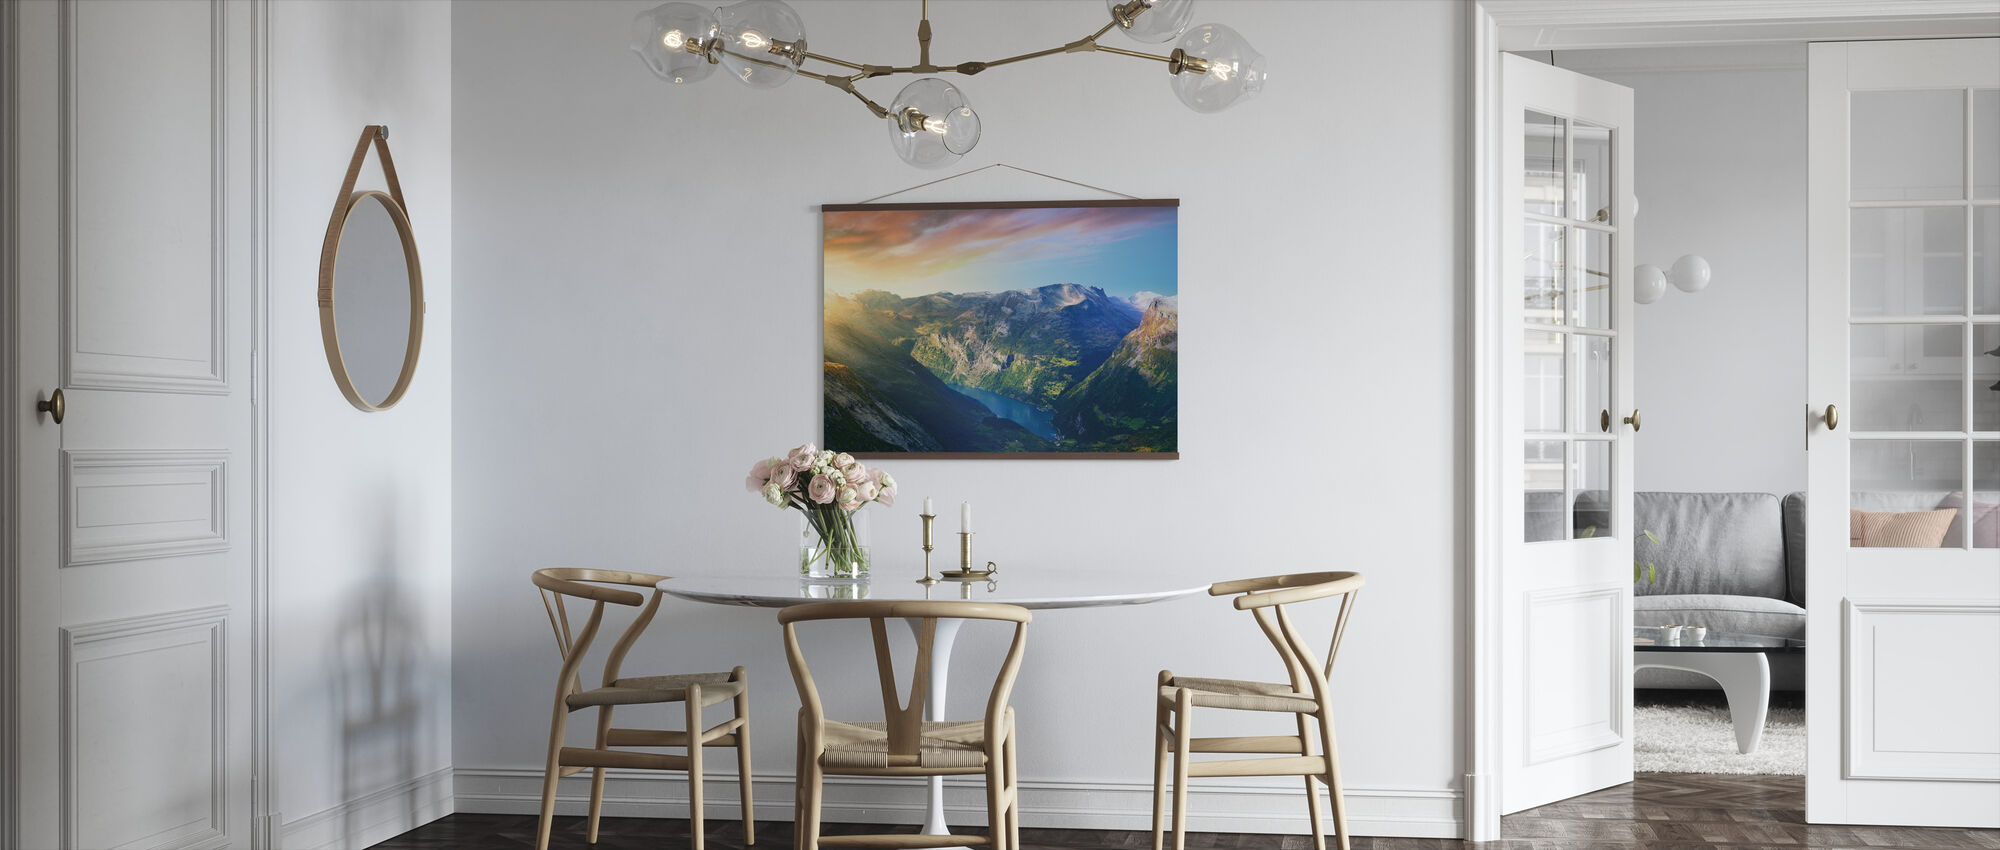 Sunrise over Geirangerfjord, Norway - Poster - Kitchen